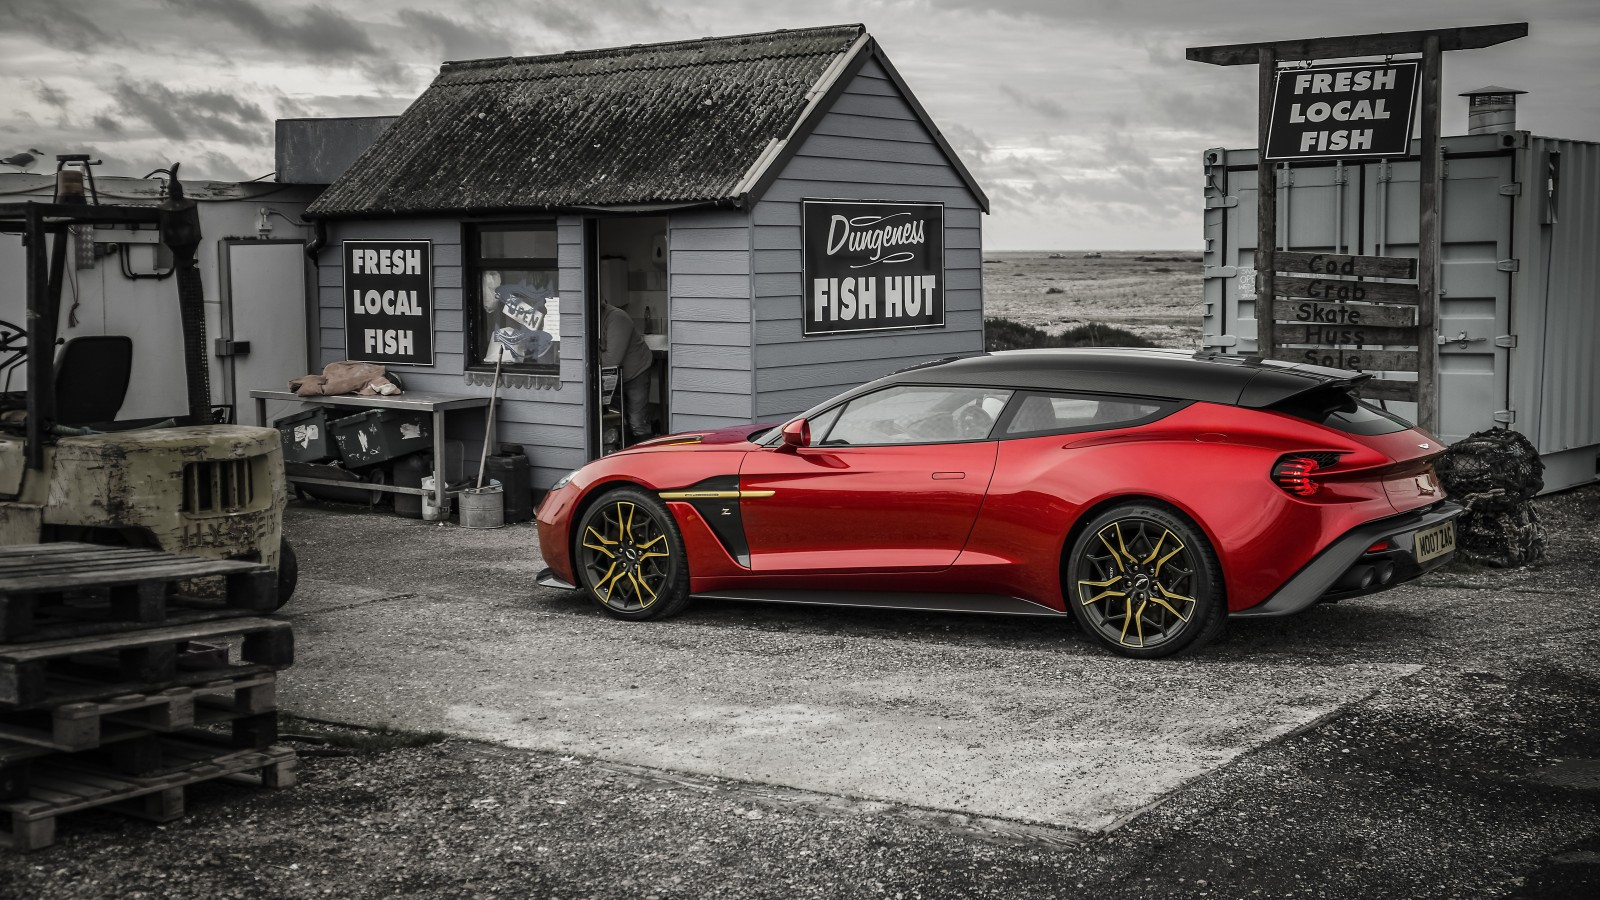 Latest Wallpapers Cars And Bikes Aston Martin Vanquish Zagato Shooting Brake 4k 8k